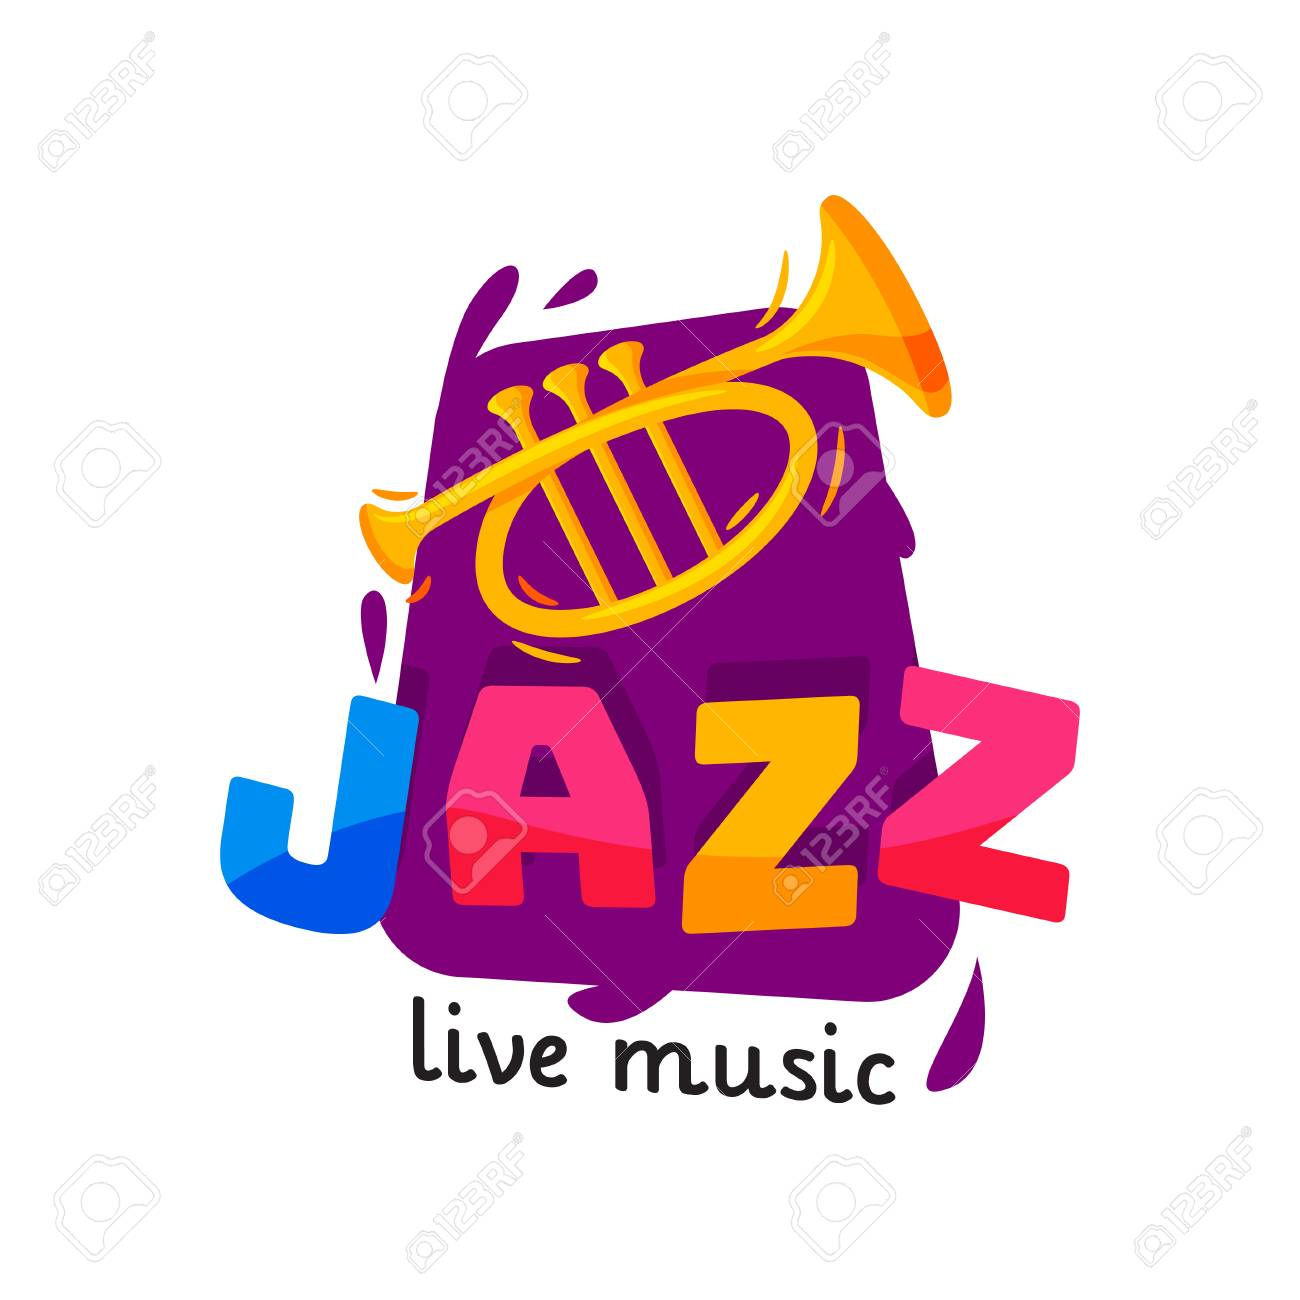 Bright logo for jazz live concert. Original music badge with golden trumpet and colorful text. Flat vector design - 118483124